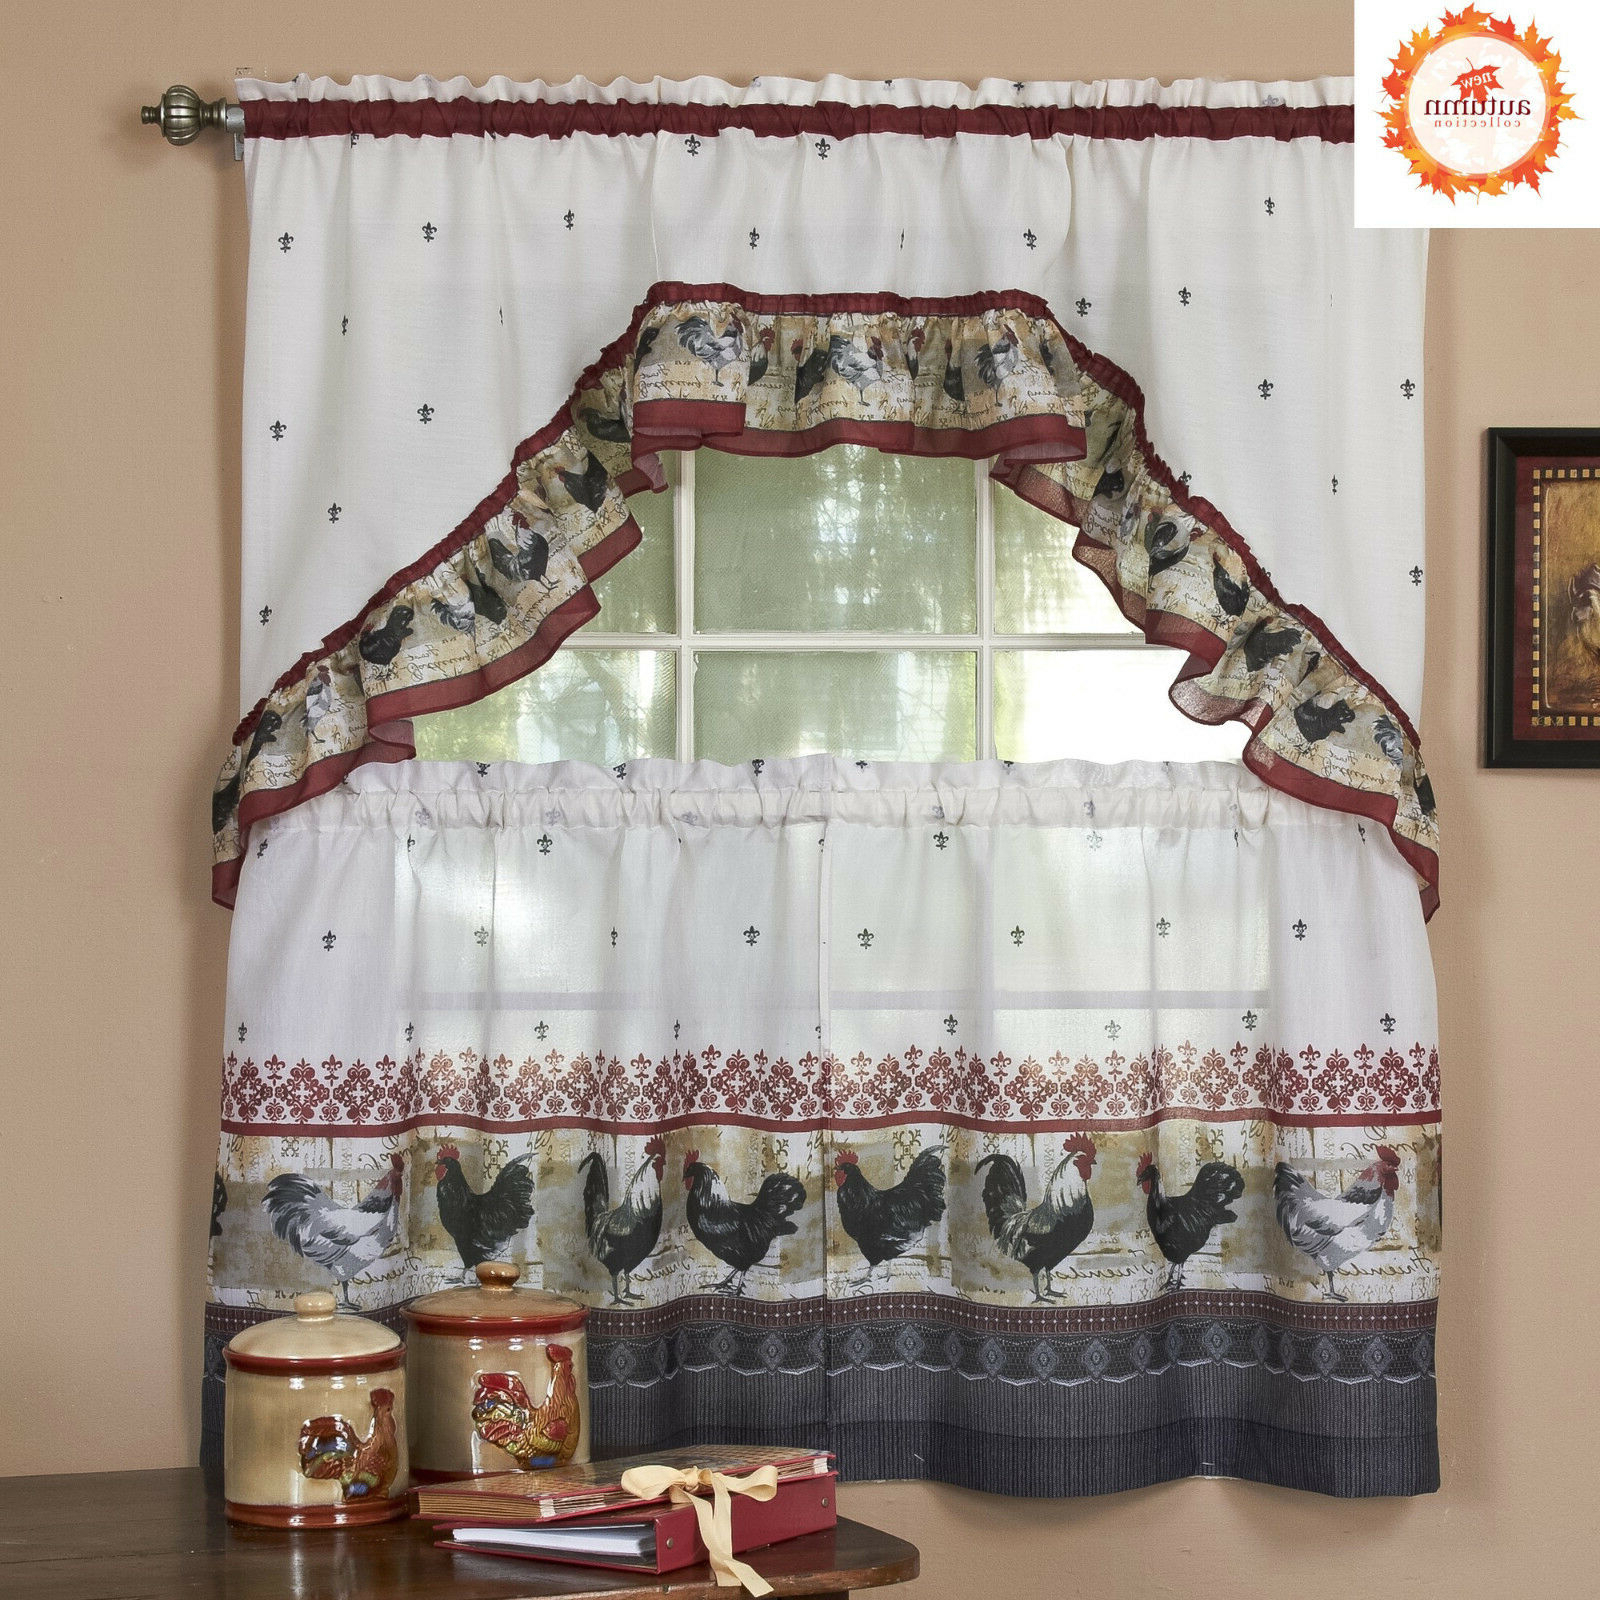 Delicious Apples Kitchen Curtain Tier And Valance Sets Intended For Most Up To Date Rooster Complete Kitchen Curtain Tier And Swag Set – Assorted Sizes (View 5 of 20)